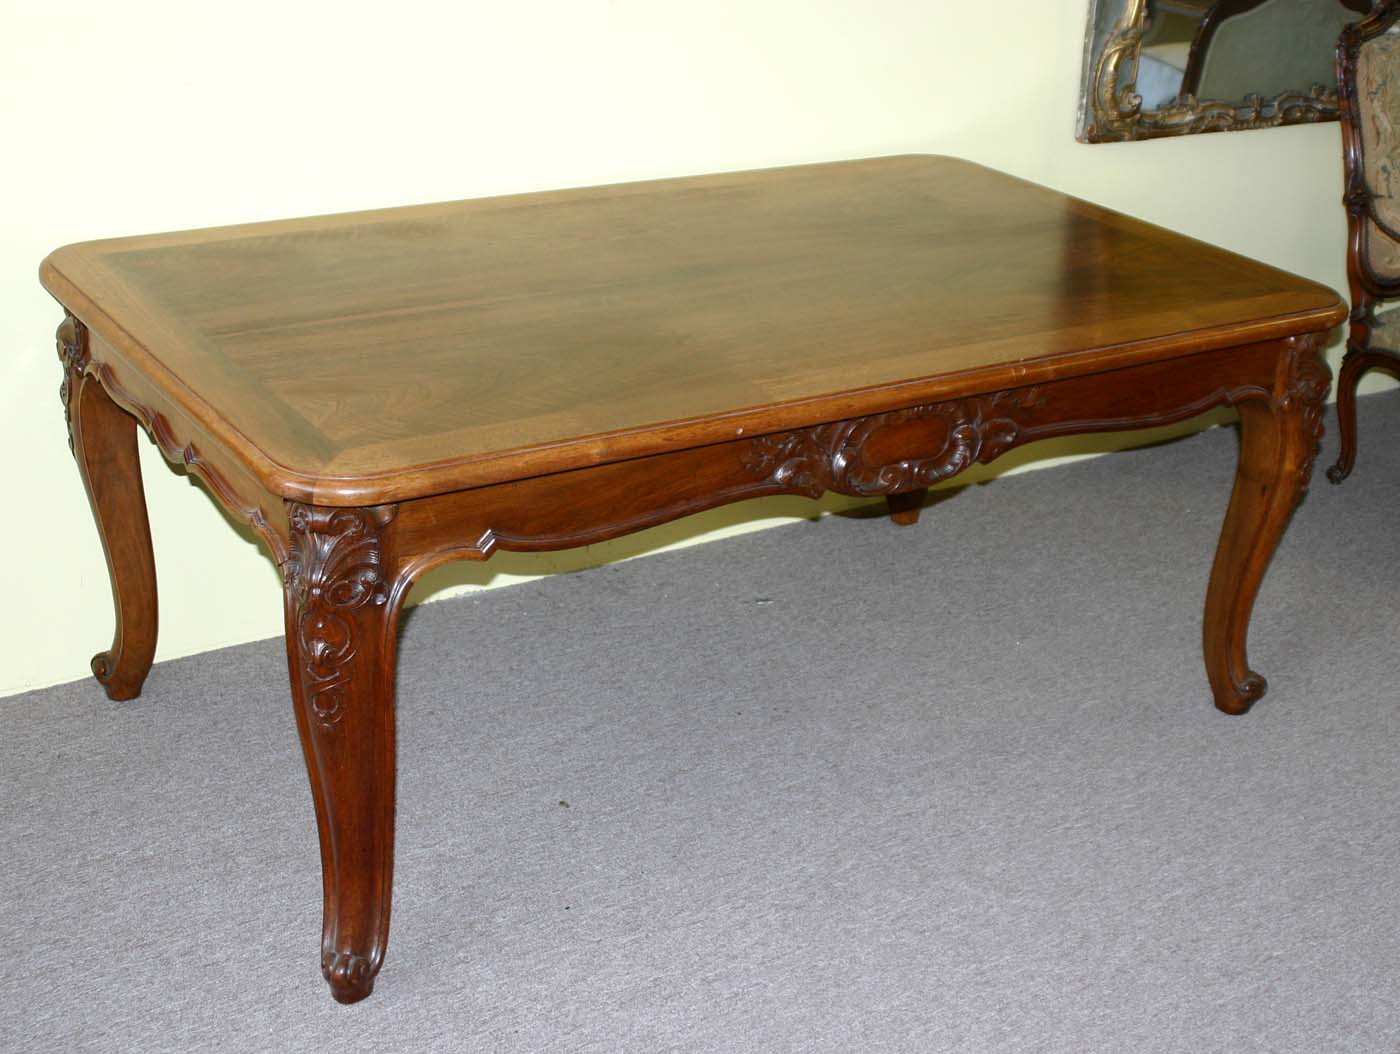 French louis xv style extension dining table for sale classifieds - Antique french dining tables ...